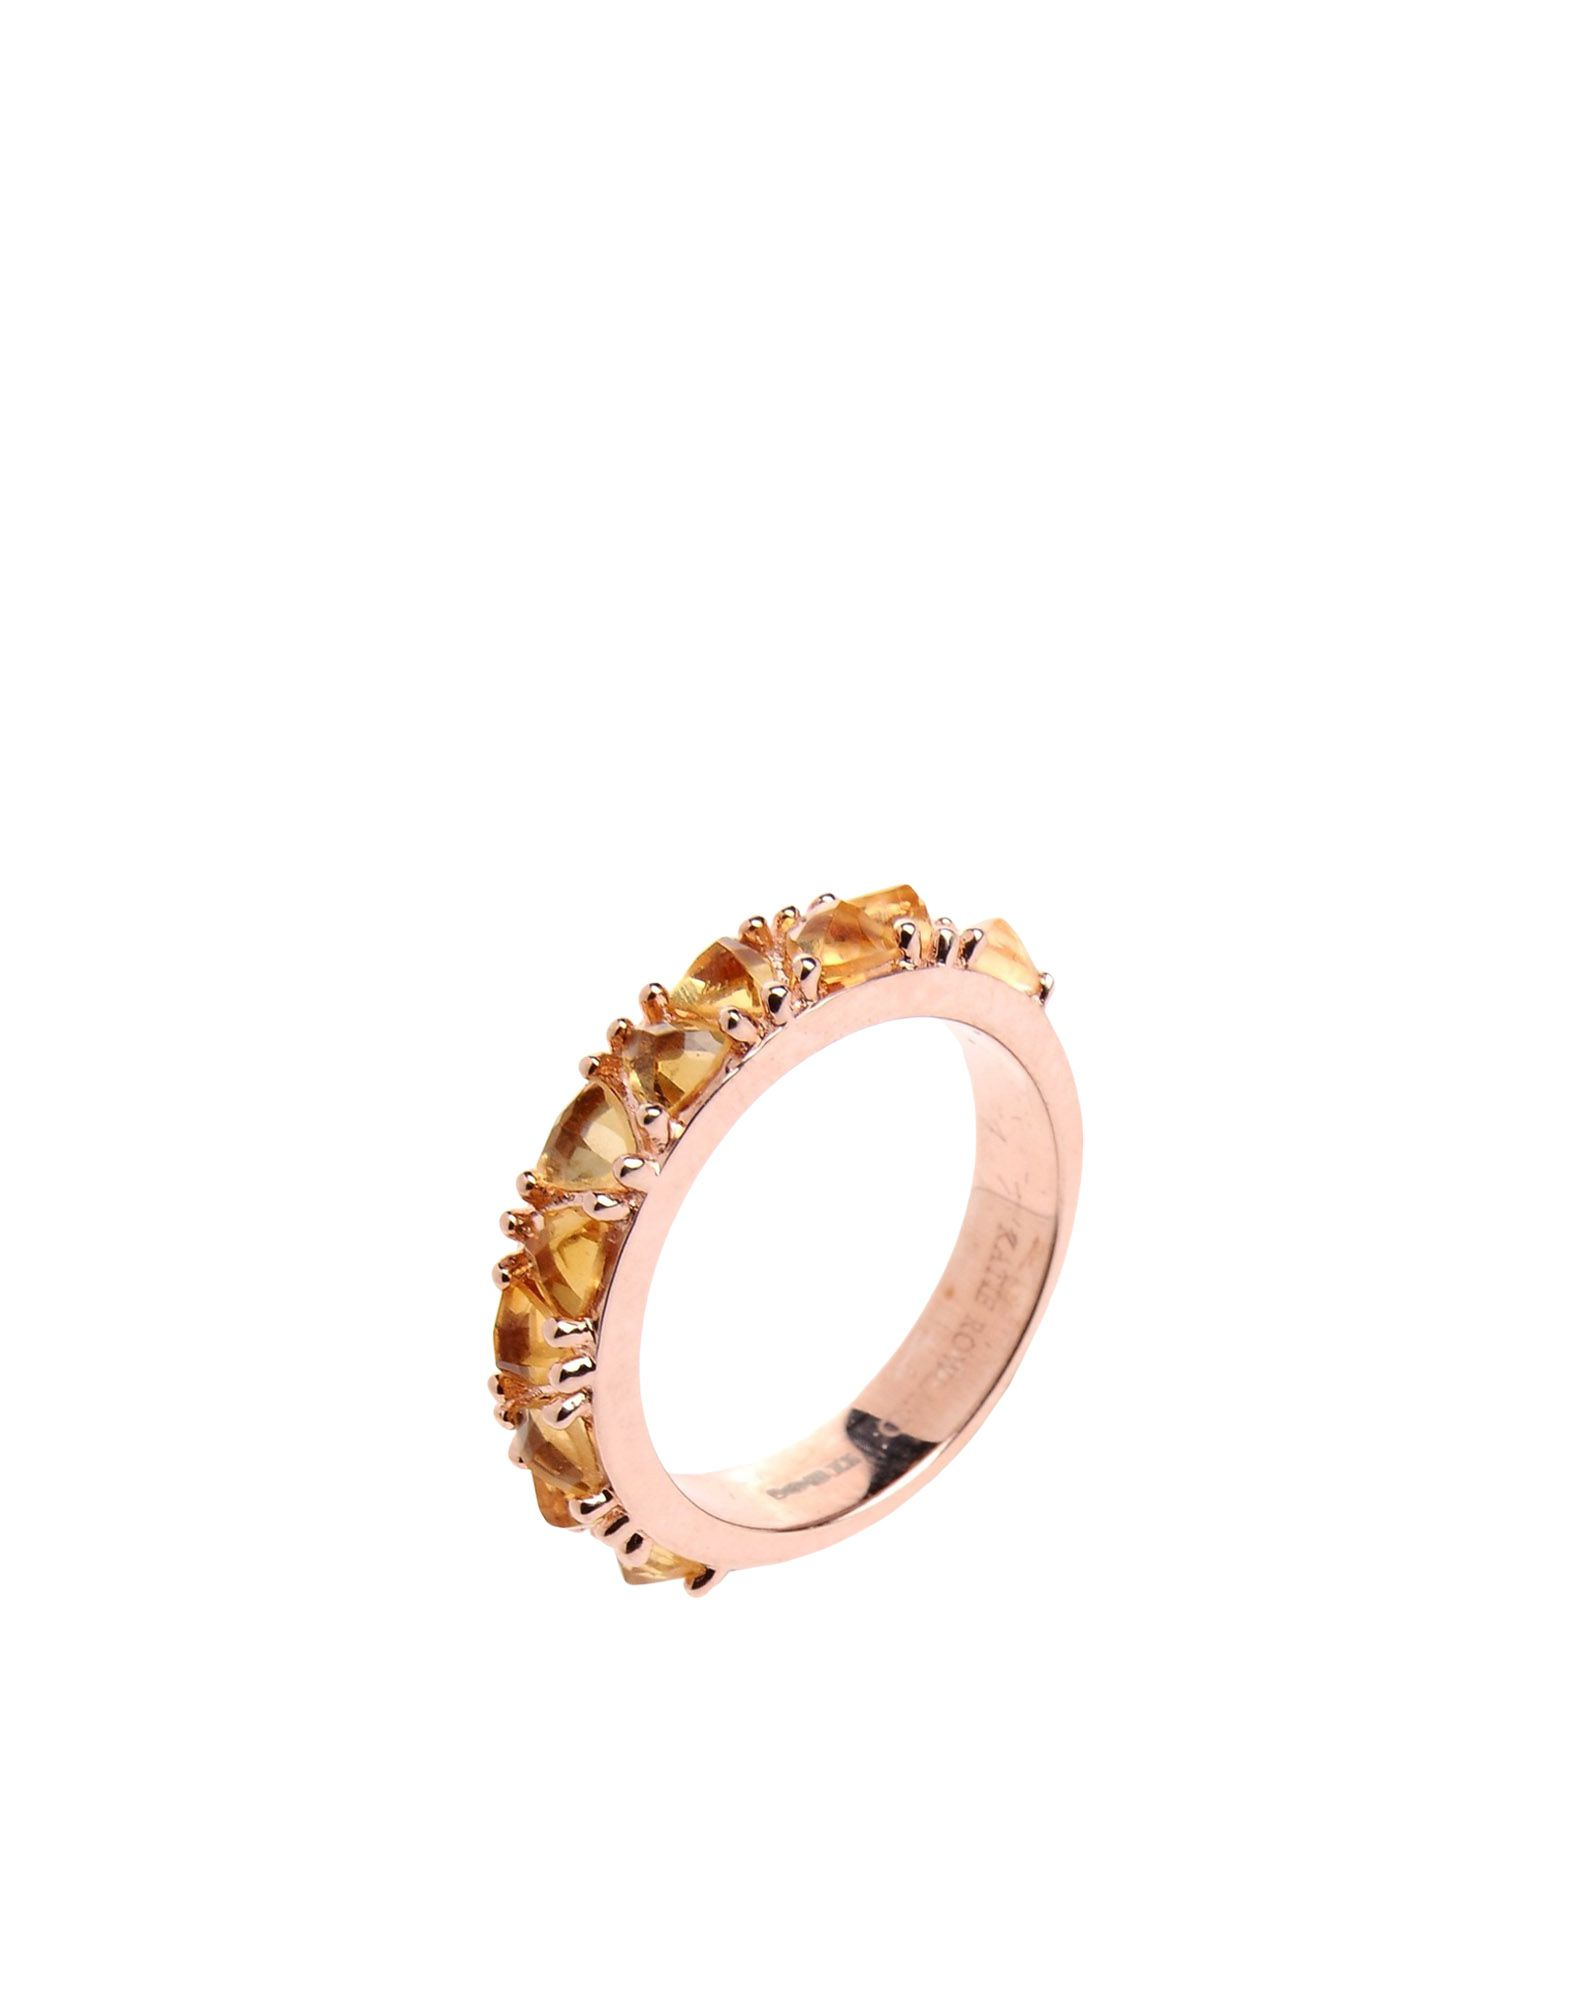 KATIE ROWLAND Ring in Pink